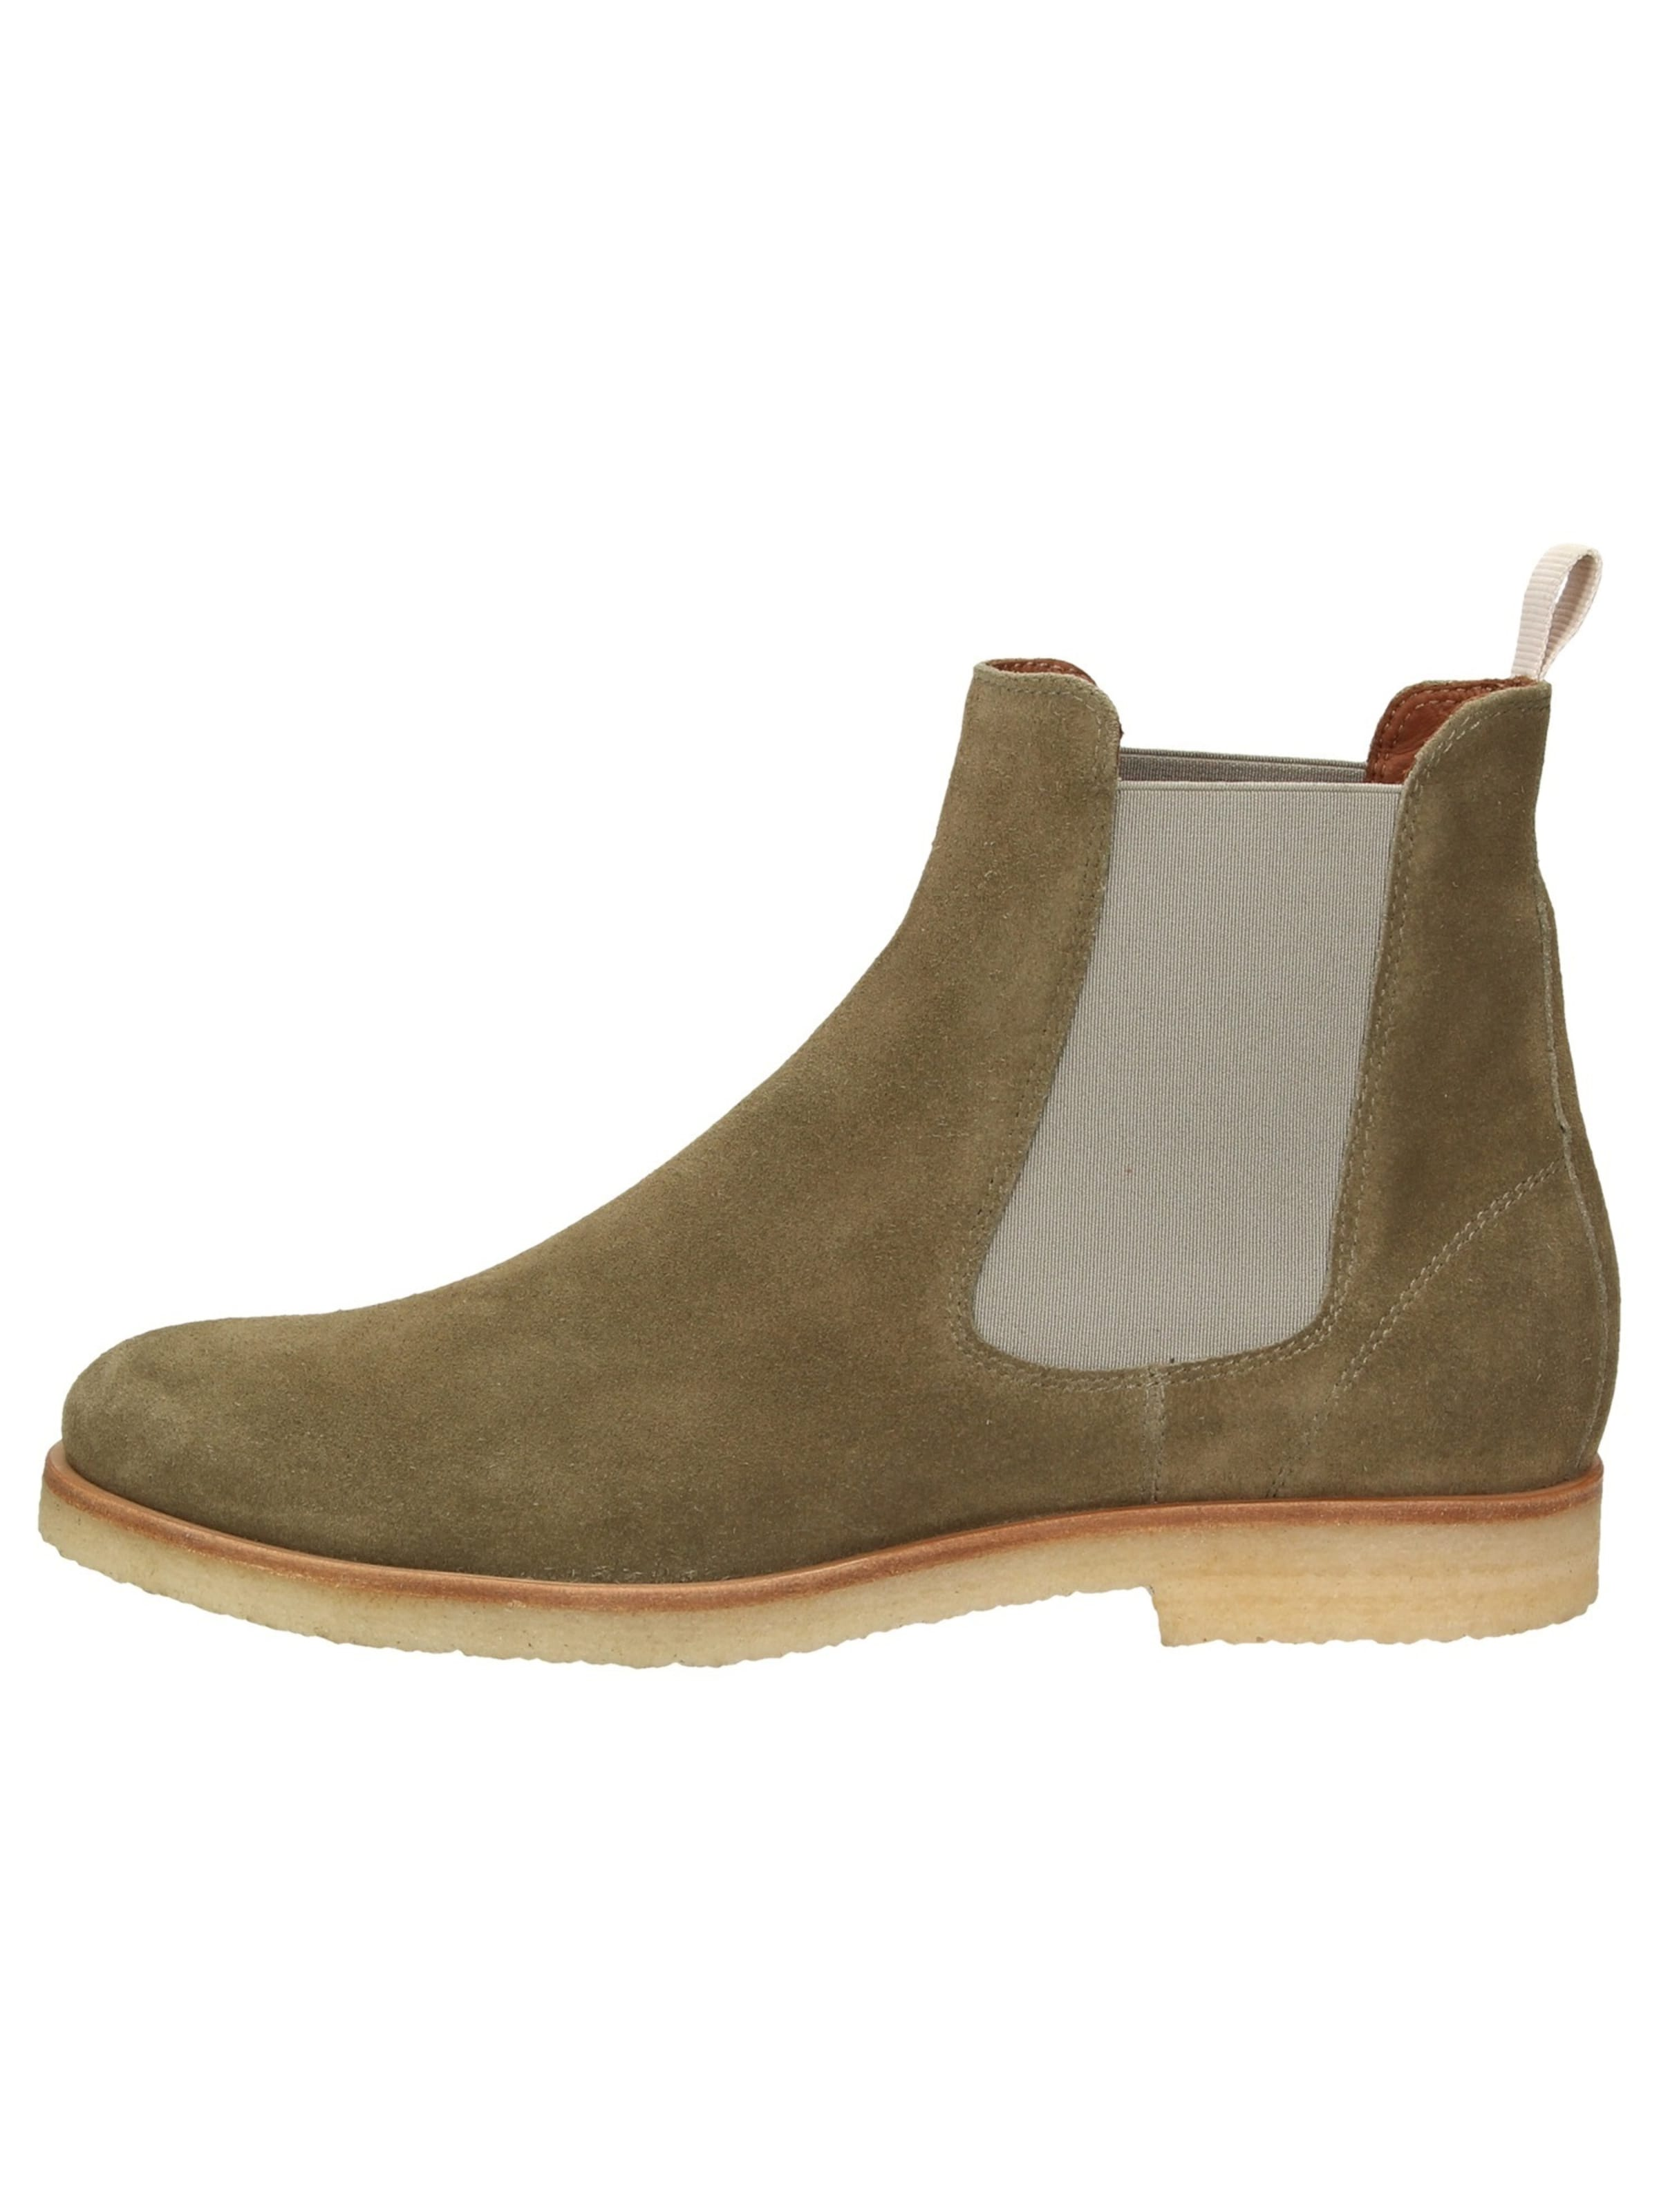 Sioux In 34alq5jr Oliv 'apollo Stiefelette 005' Qdhtsr